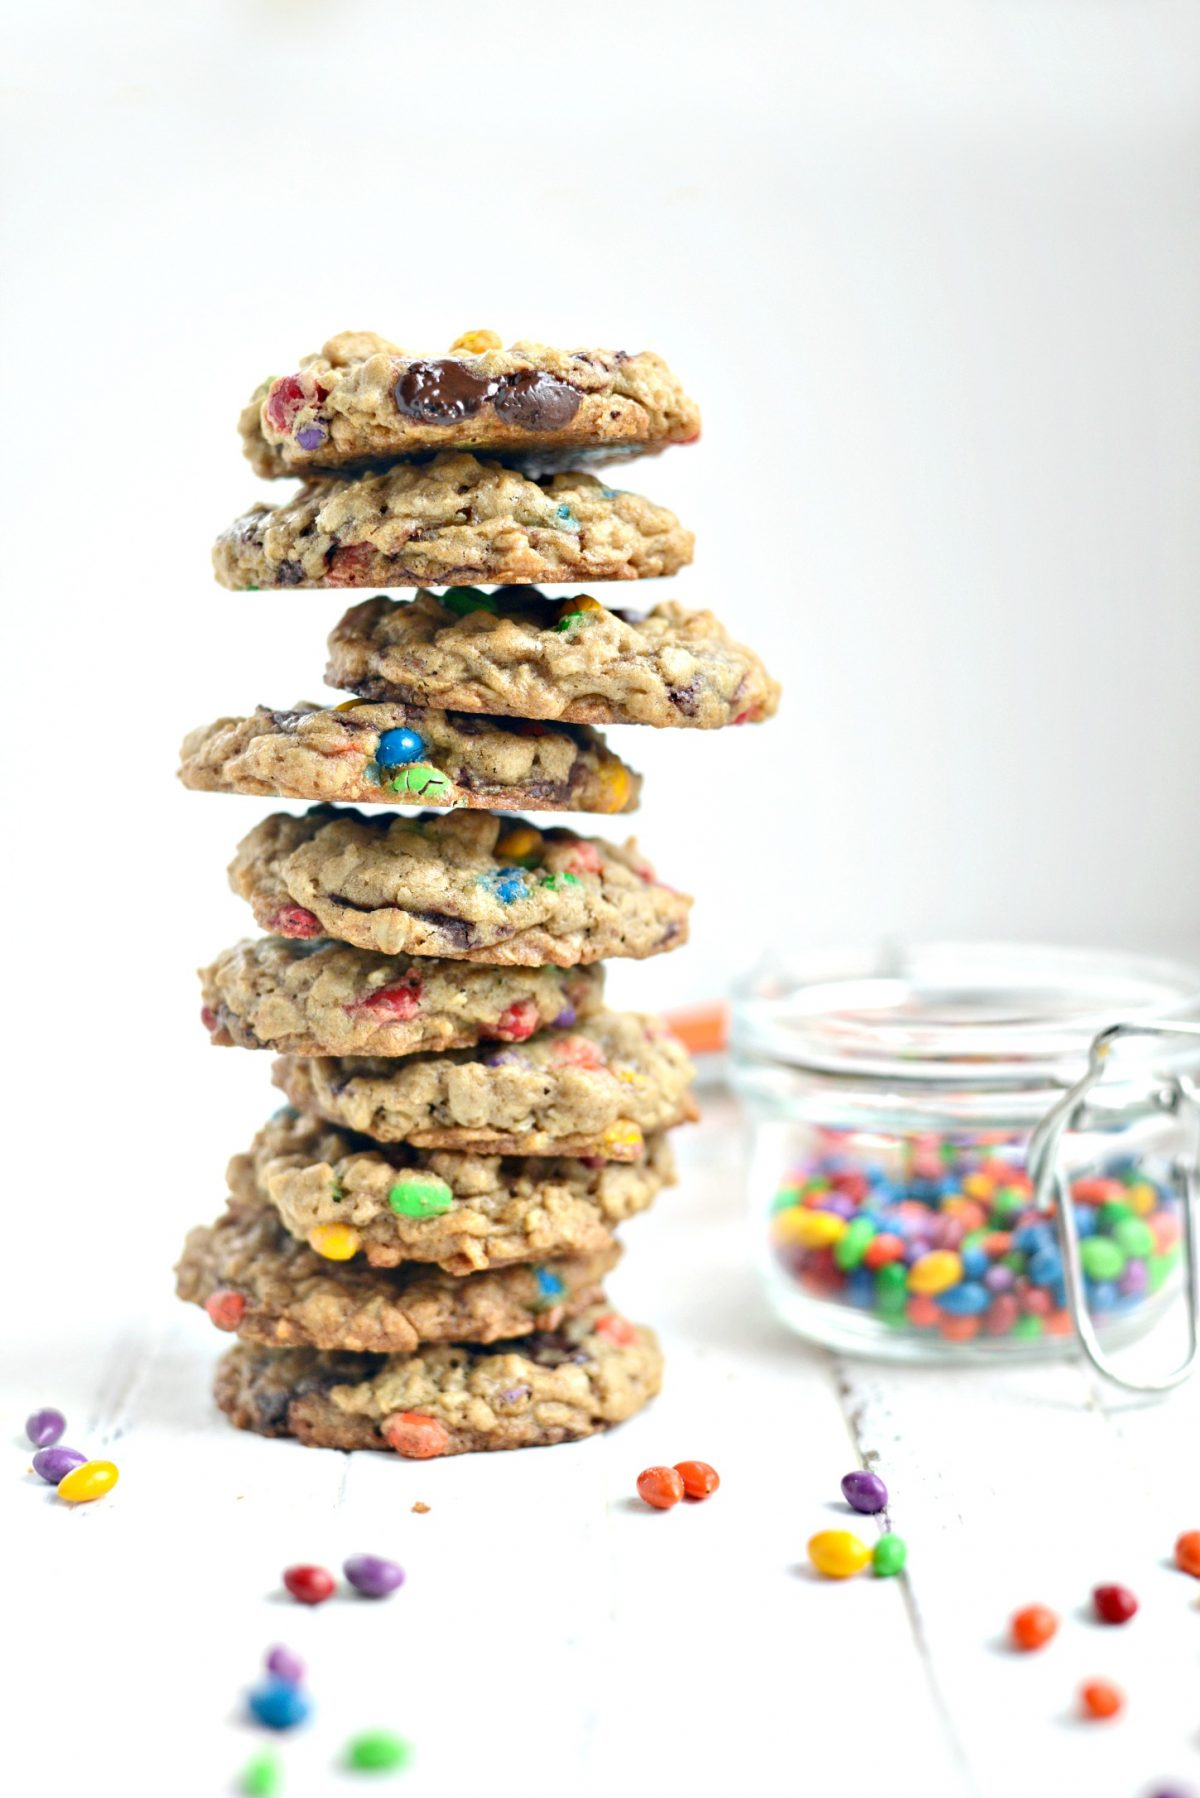 Oatmeal Chocolate Chunk Sunflower Seed Cookies